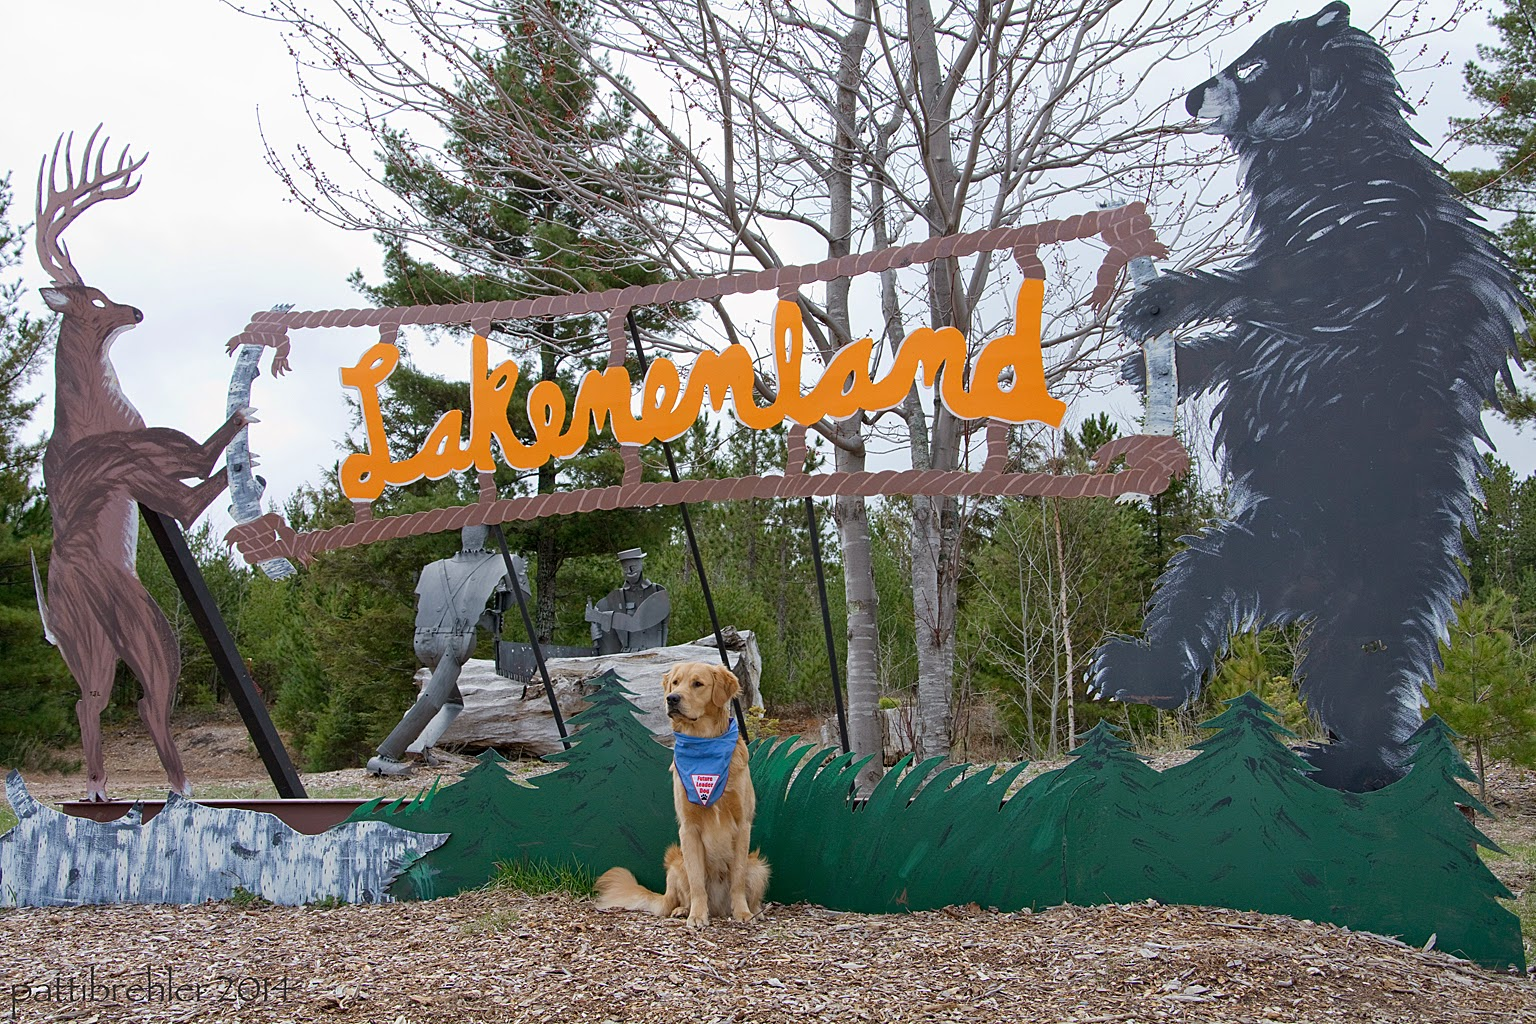 "A golden retriever sits in front of a large metal sign. On the left of the sign is an antlered deer standing on its hind legs, on the right side of the sign is a black bear standing up on its hind legs. The two animals are holding the outline of a brown metal sign that has the word ""Lakenenland"" in yellow inside of it Behind the sign are trees. The dog is sitting in what looks like mulch. He is wearing the blue Future Leader Dog bandana."